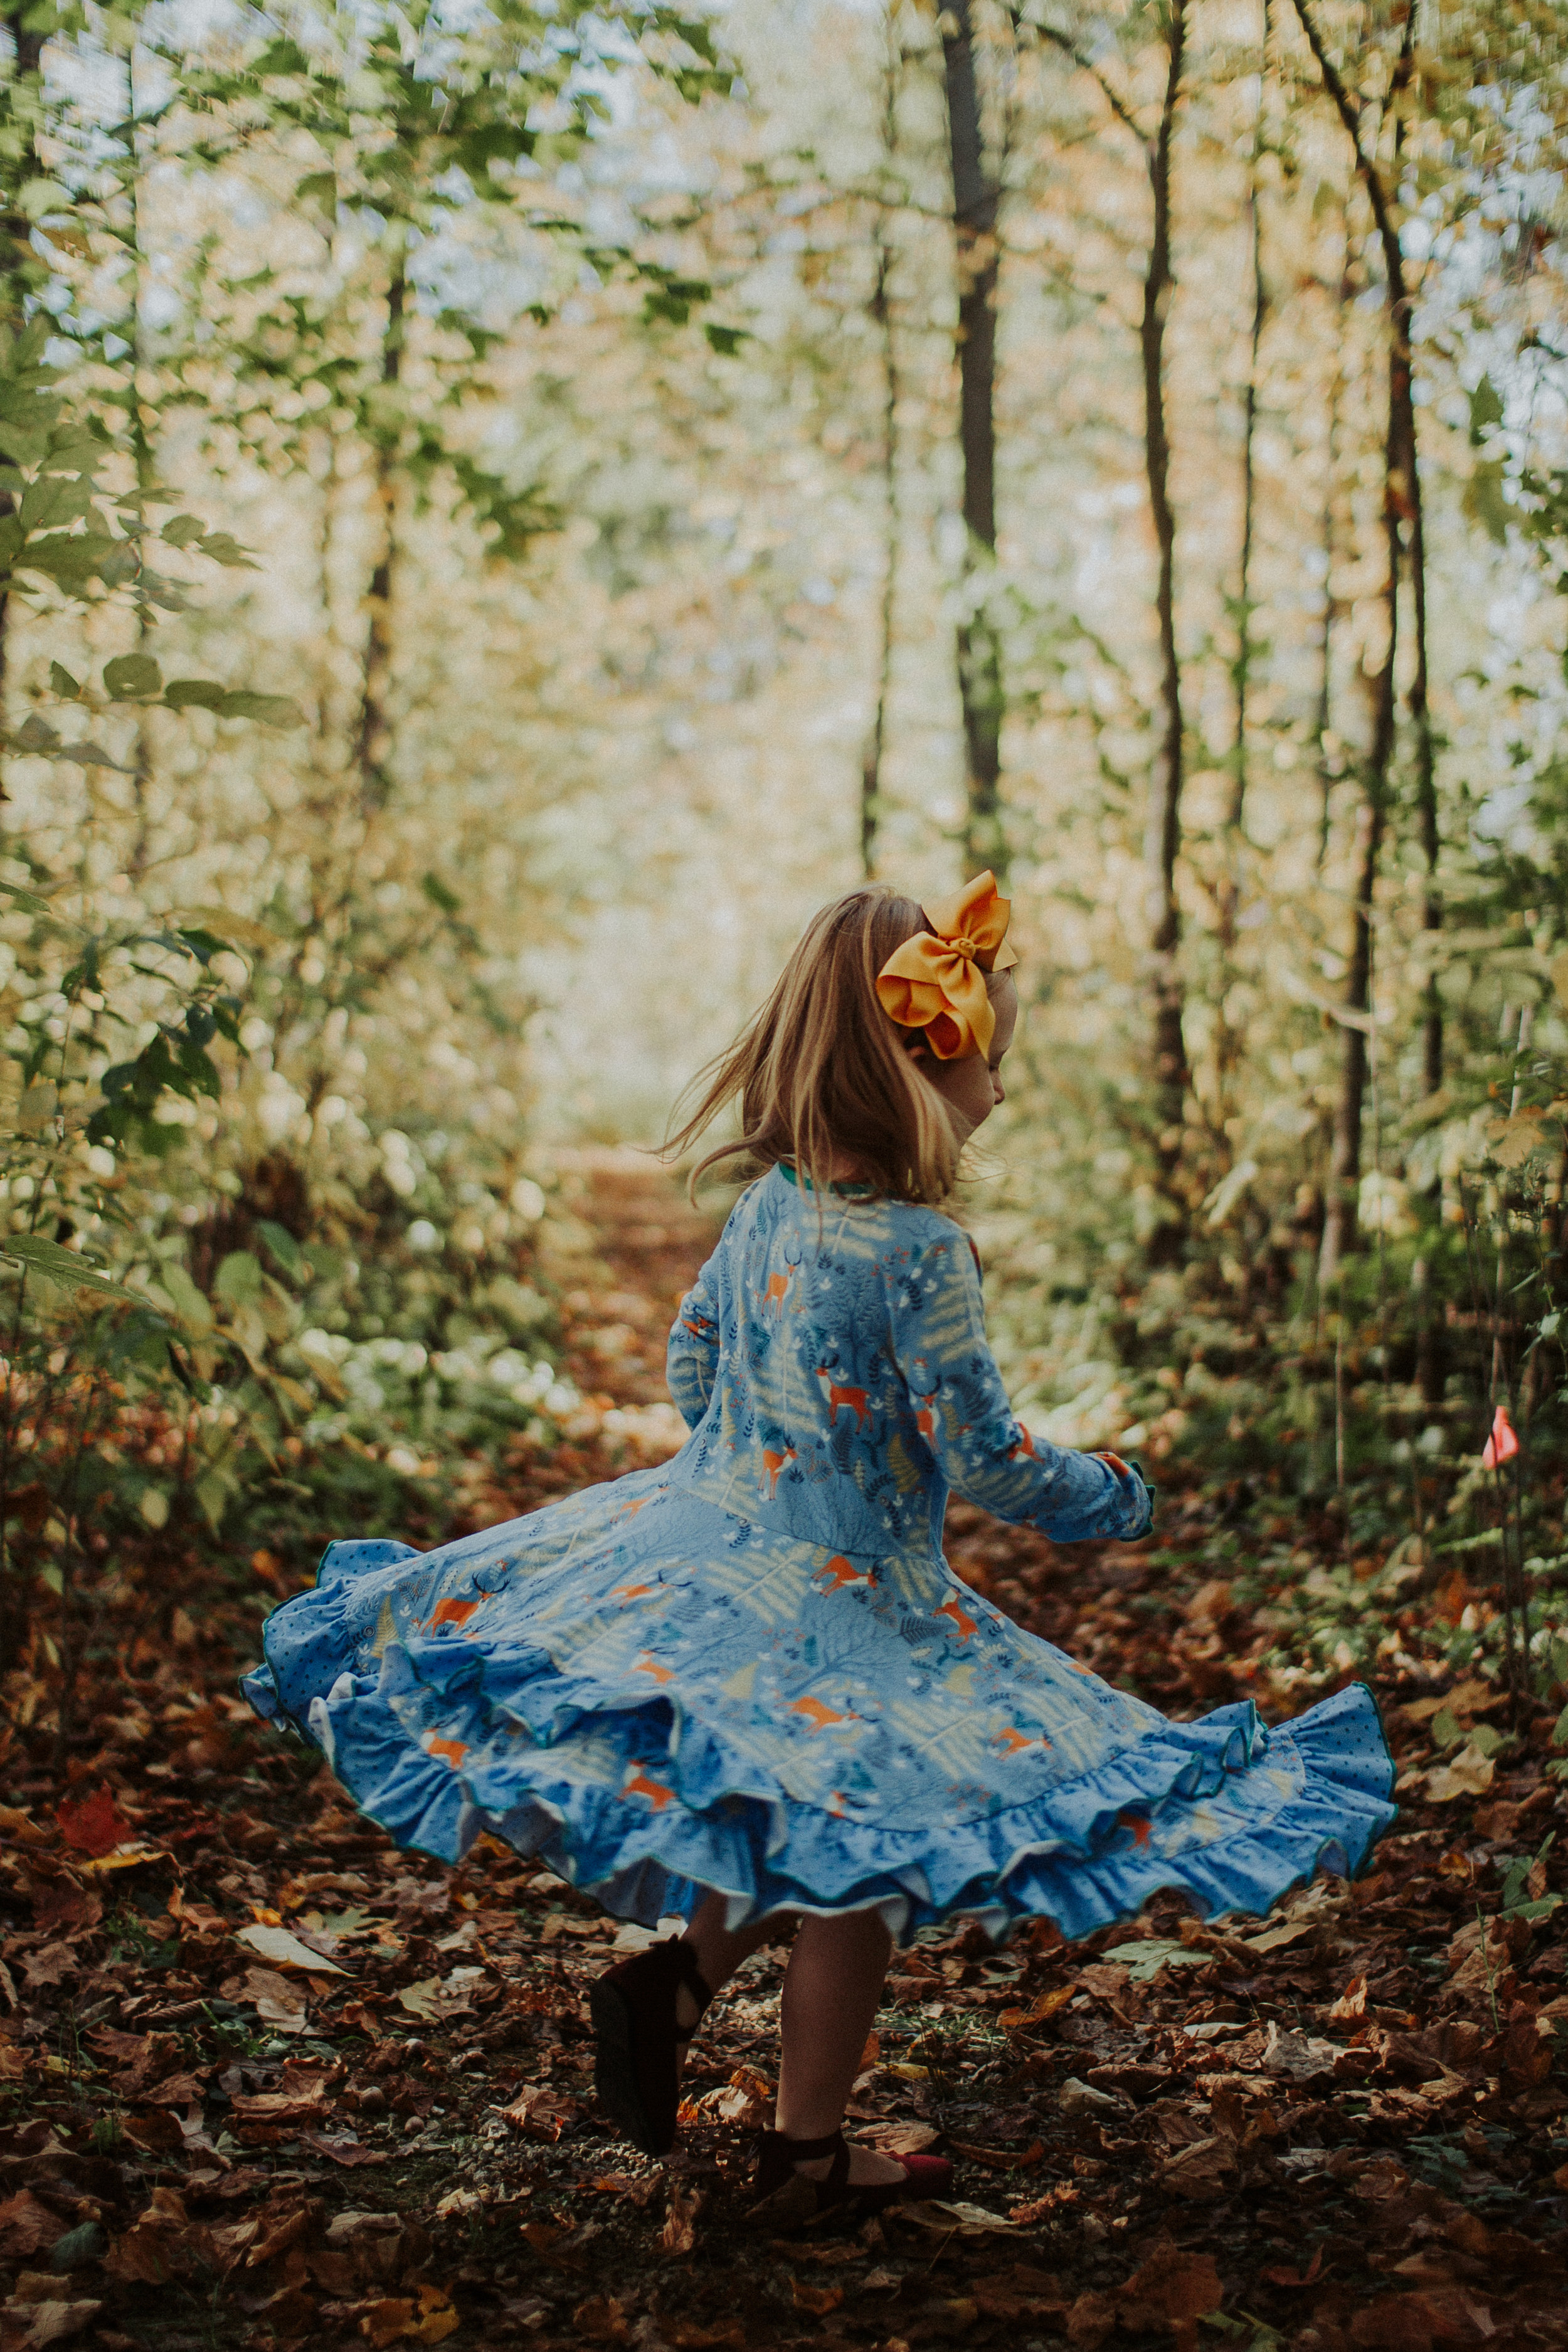 Nothing's cuter than kids throwing leaves and twirling their dresses, which Jovie did pretty well for her 4th birthday photos.